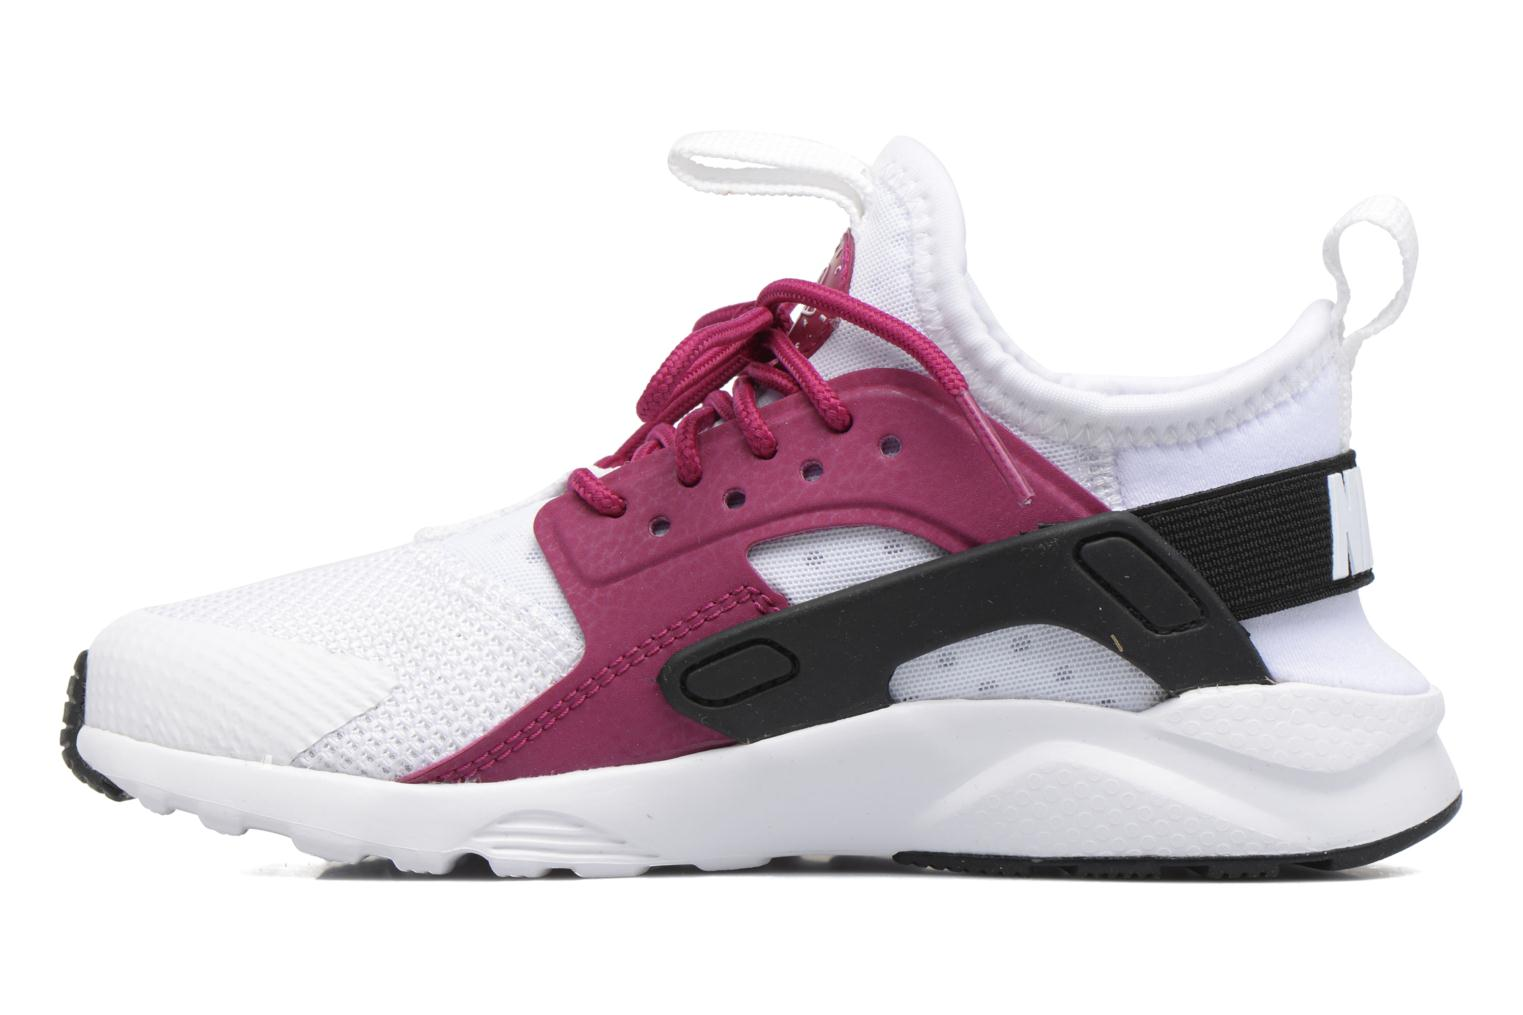 Black/white Nike Nike Huarache Run Ultra (Ps) (Noir)